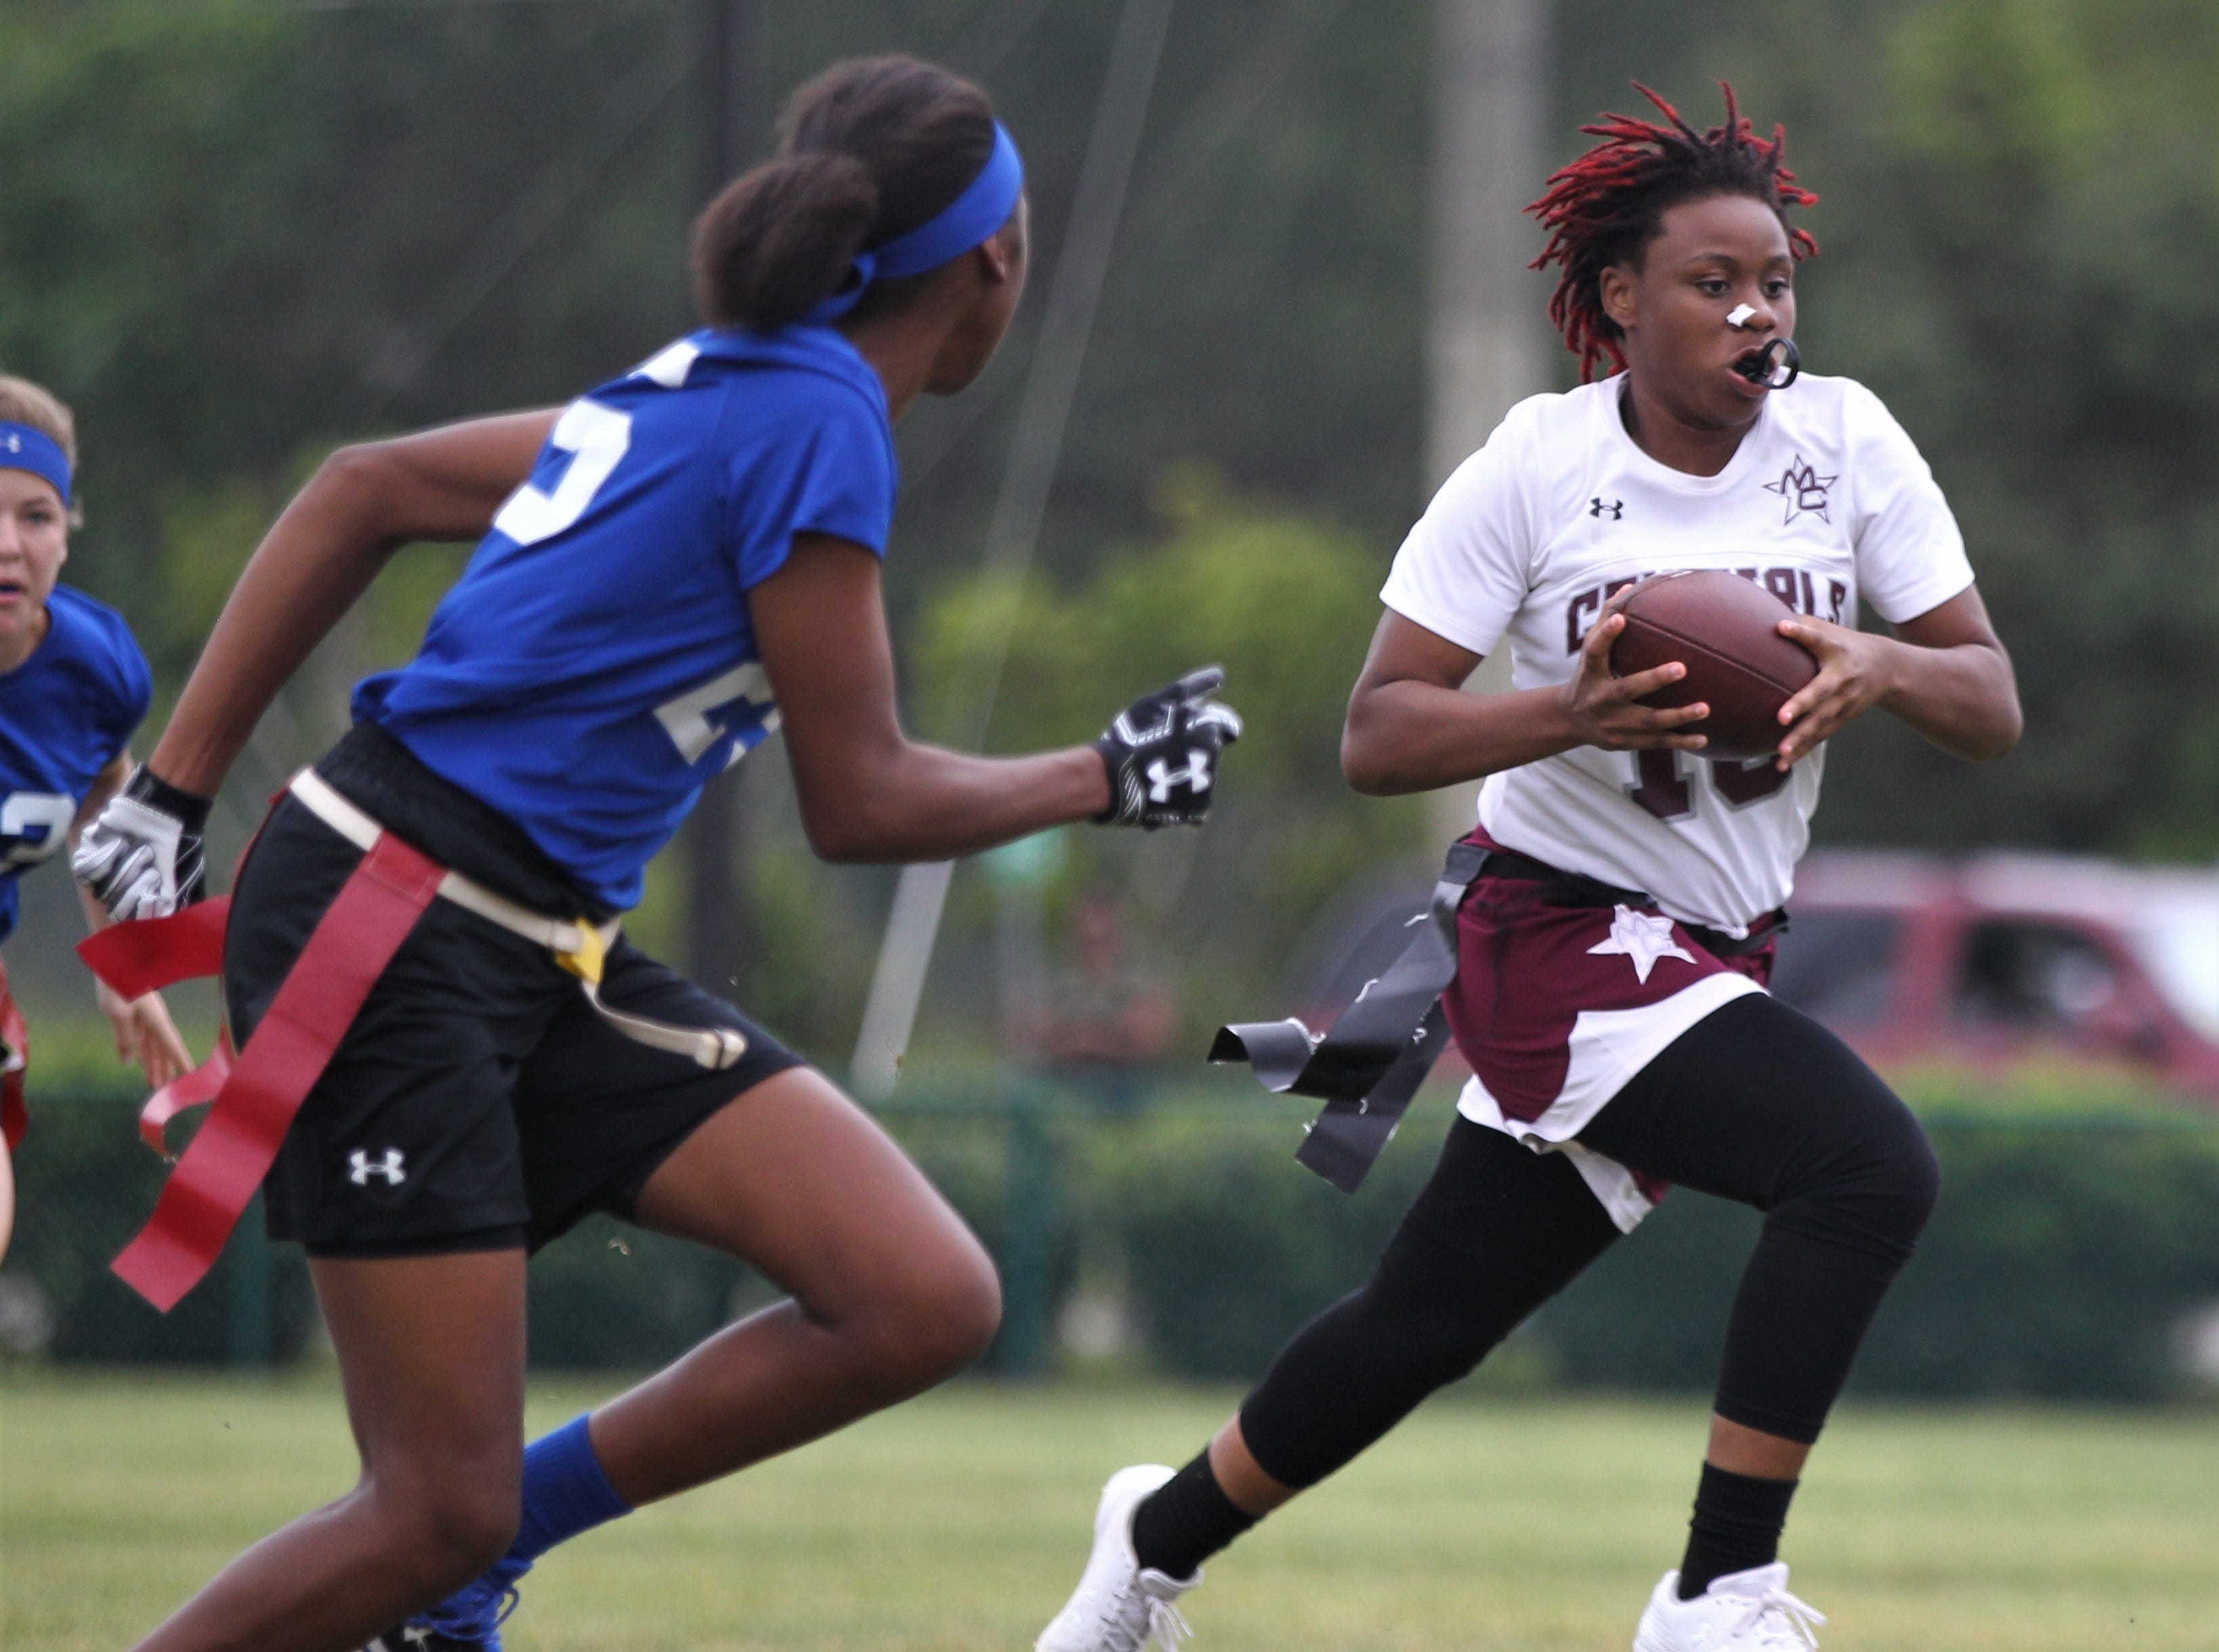 Madison County's Zharia Norwood runs for a gain against Belleview in the 2019 Capital City Classic at the FSU Rec SportsPlex on April 6, 2019.